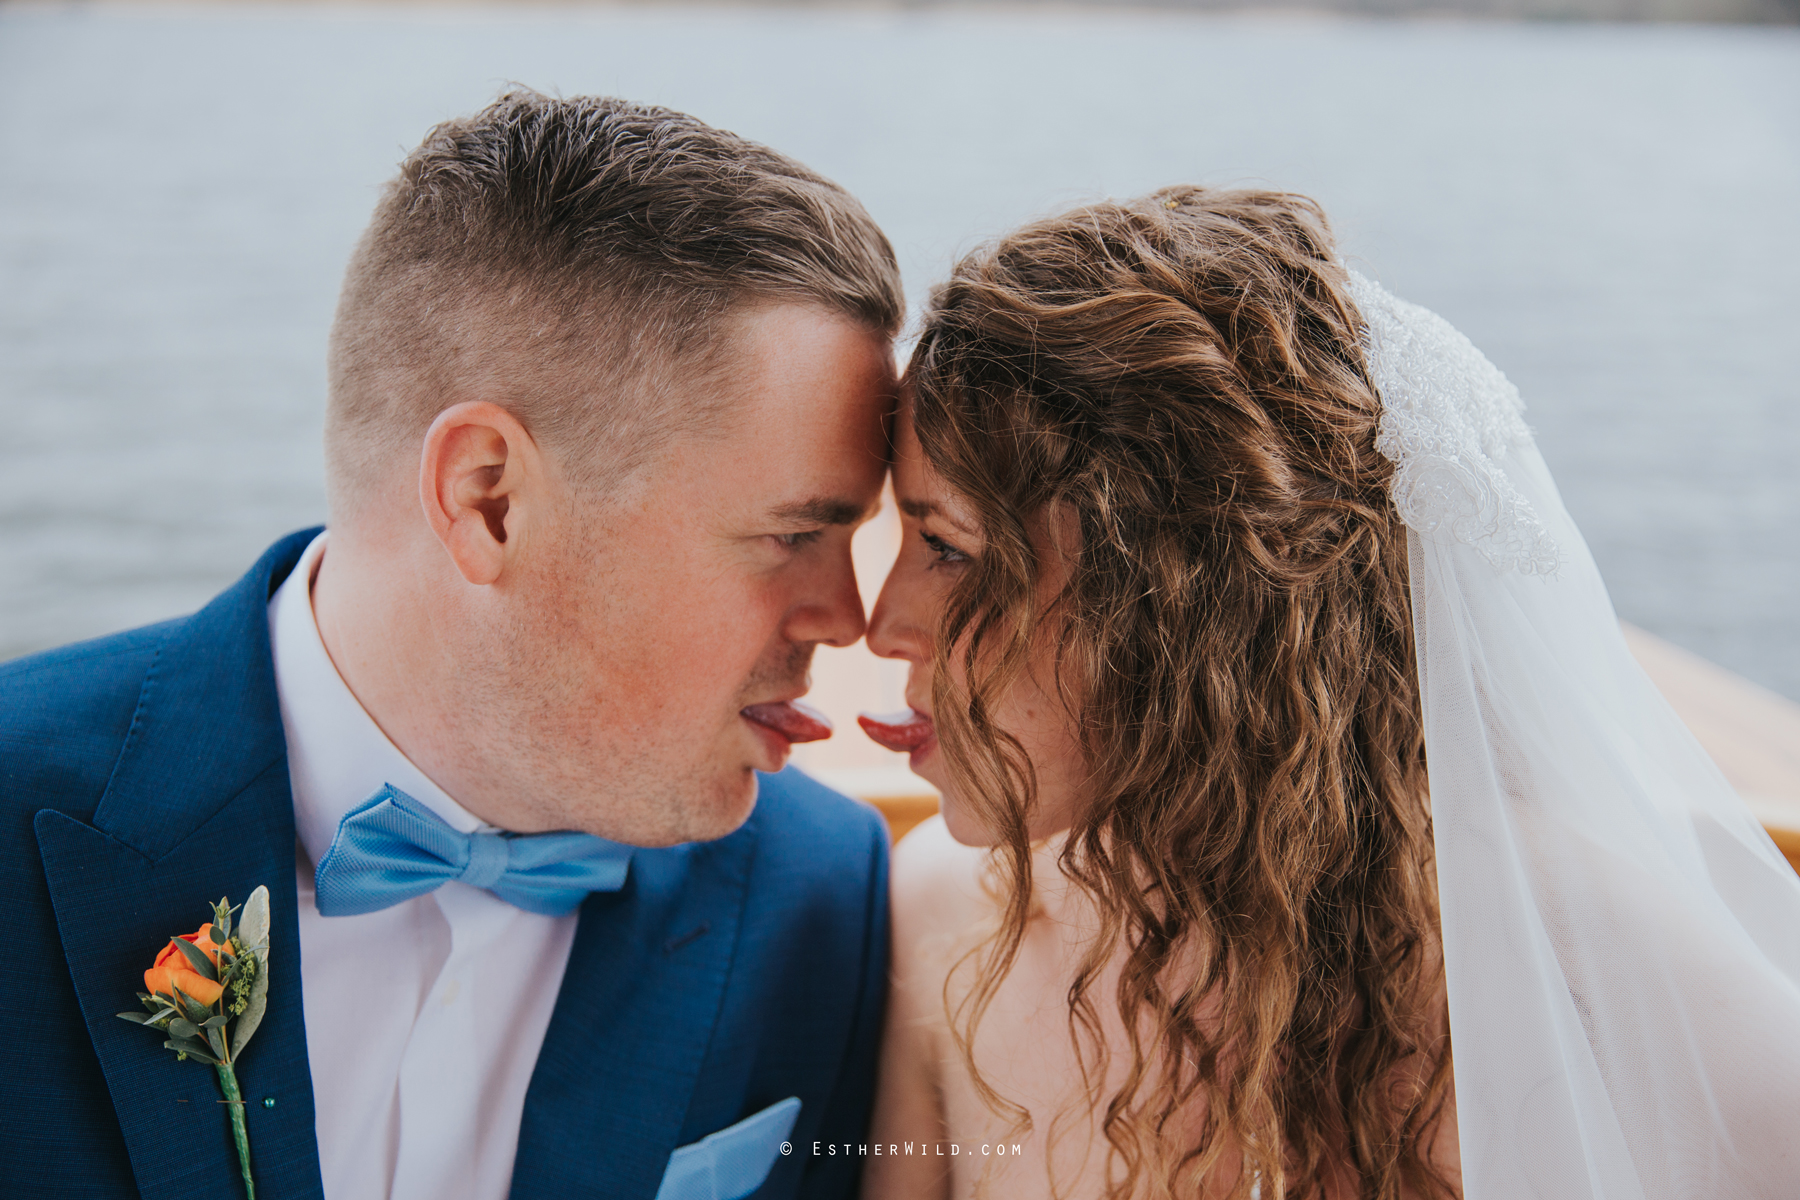 The_BoatHouse_Wedding_Venue_Ormesby_Norfolk_Broads_Boat_Wedding_Photography_Esther_Wild_Photographer_IMG_1518.jpg